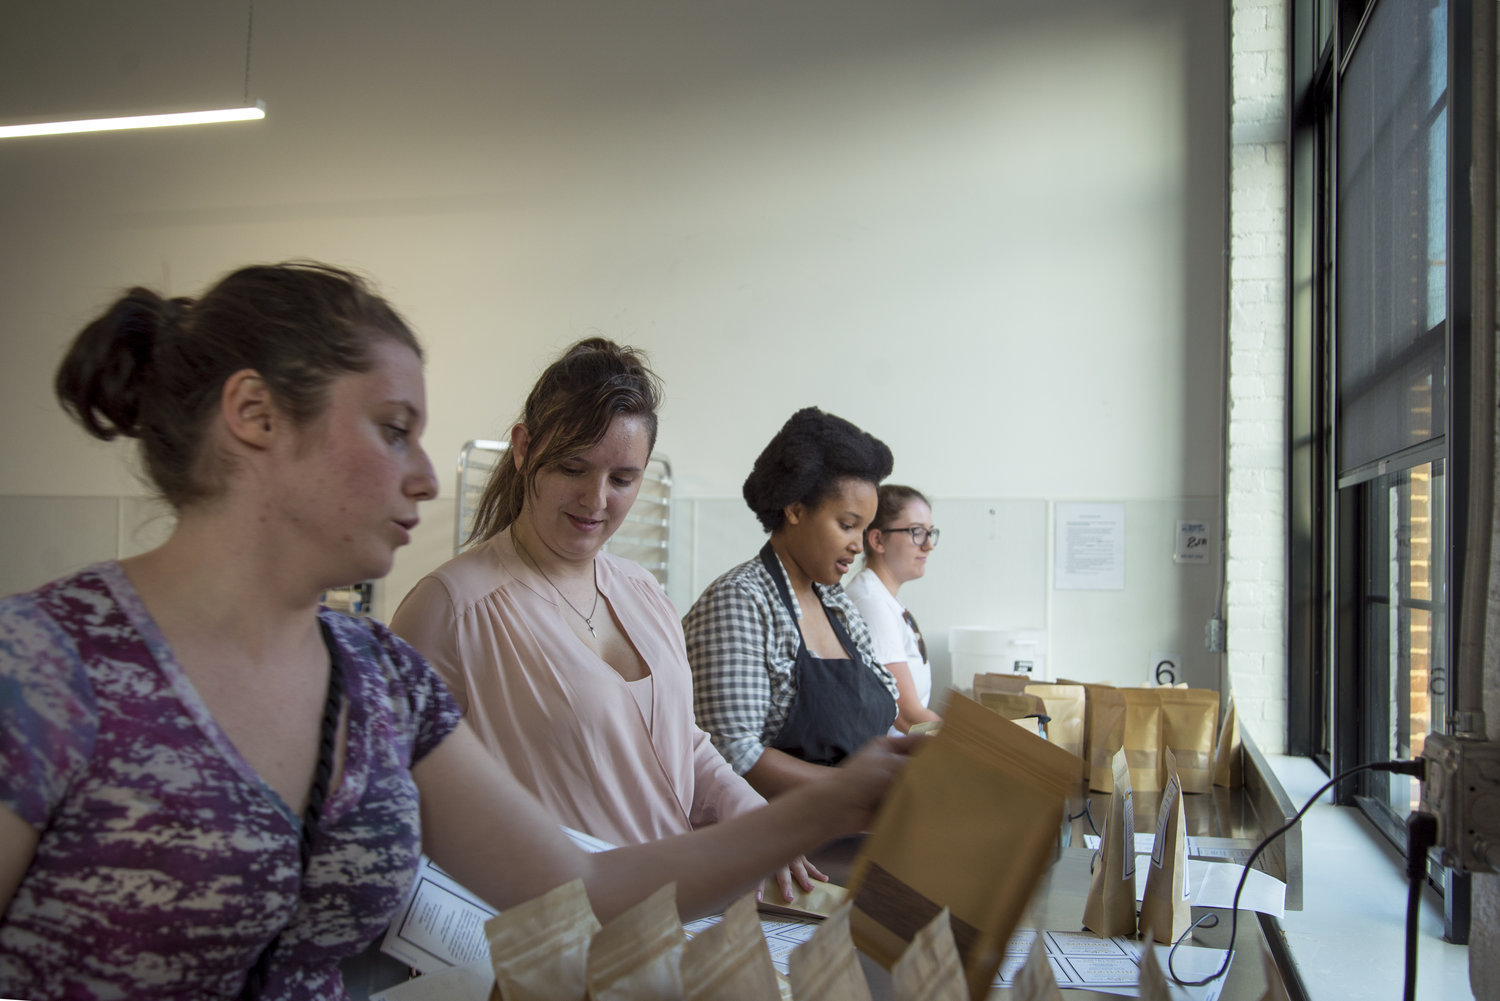 From left, Sam Gannon, Jessie Pulling, Natasha Daniels, and Nicole Gresko work, assembly-line style, to pack and label OURgrain flour, which is made from brewers' spent grain. (Joanna Detz/ecoRI News)